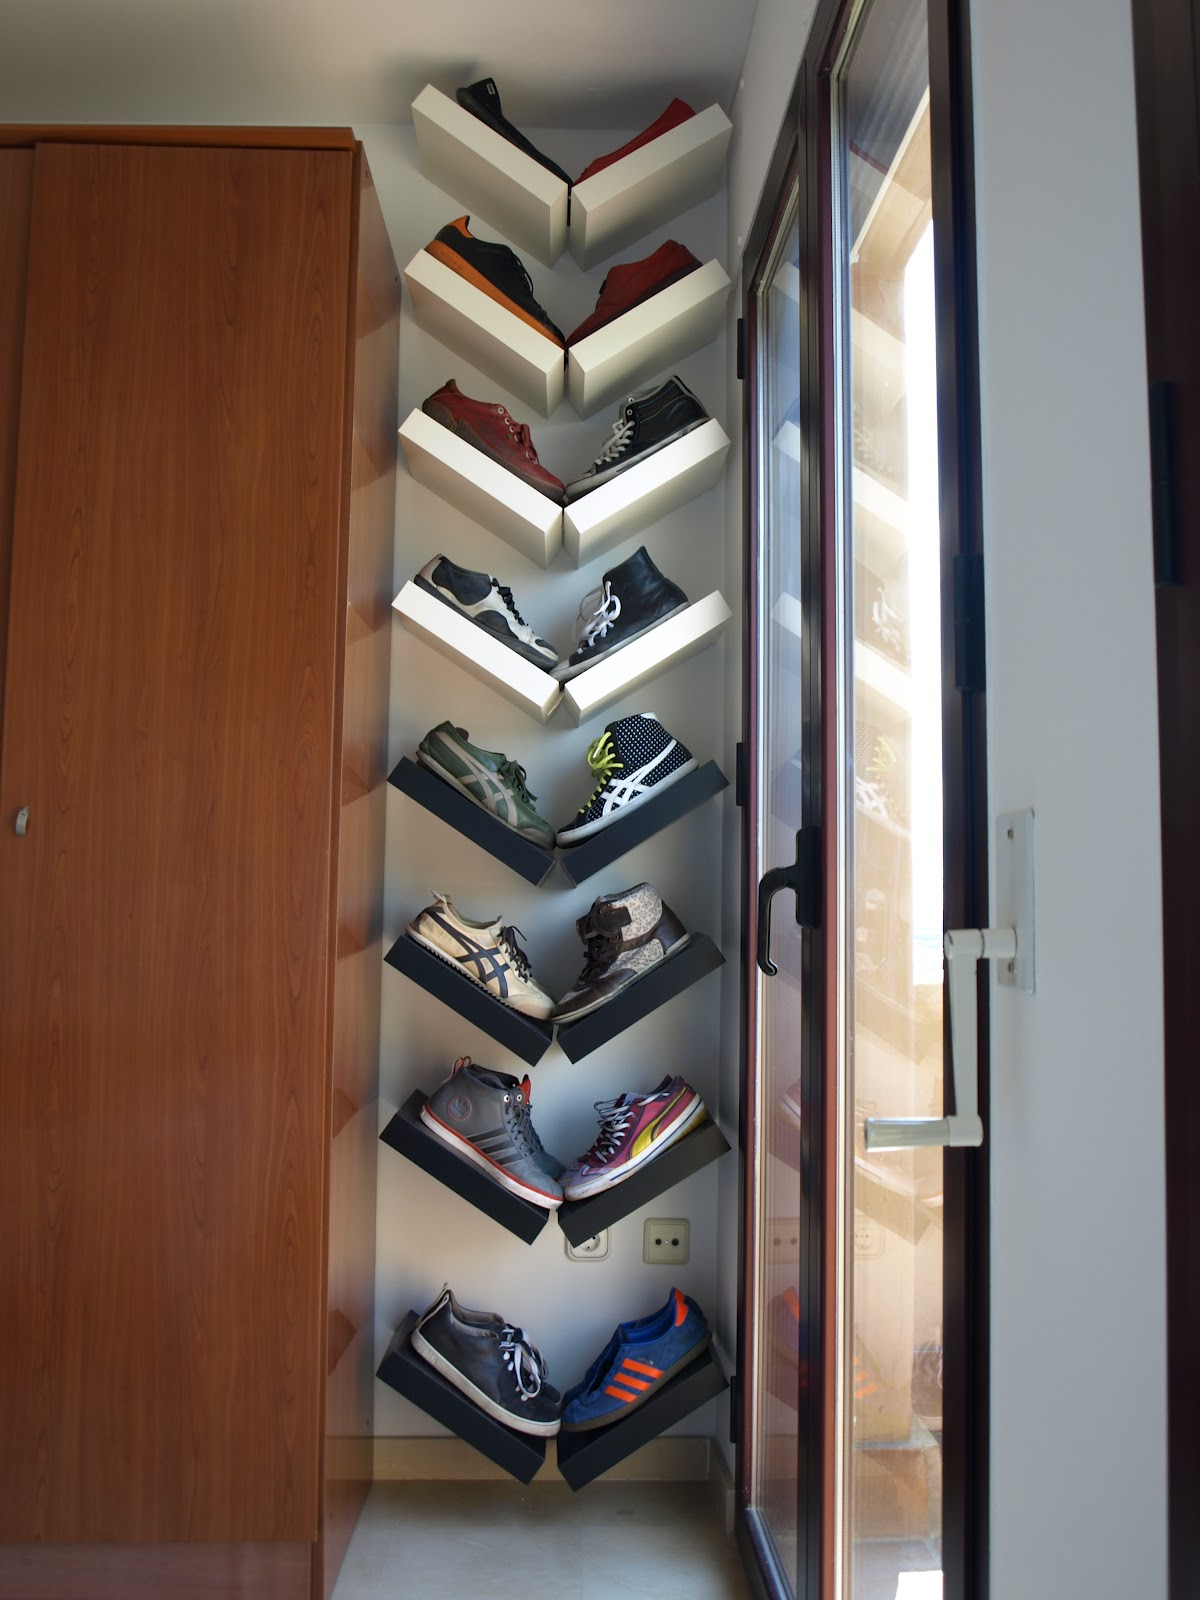 Wooden frames placed in a V shape to organize shoes